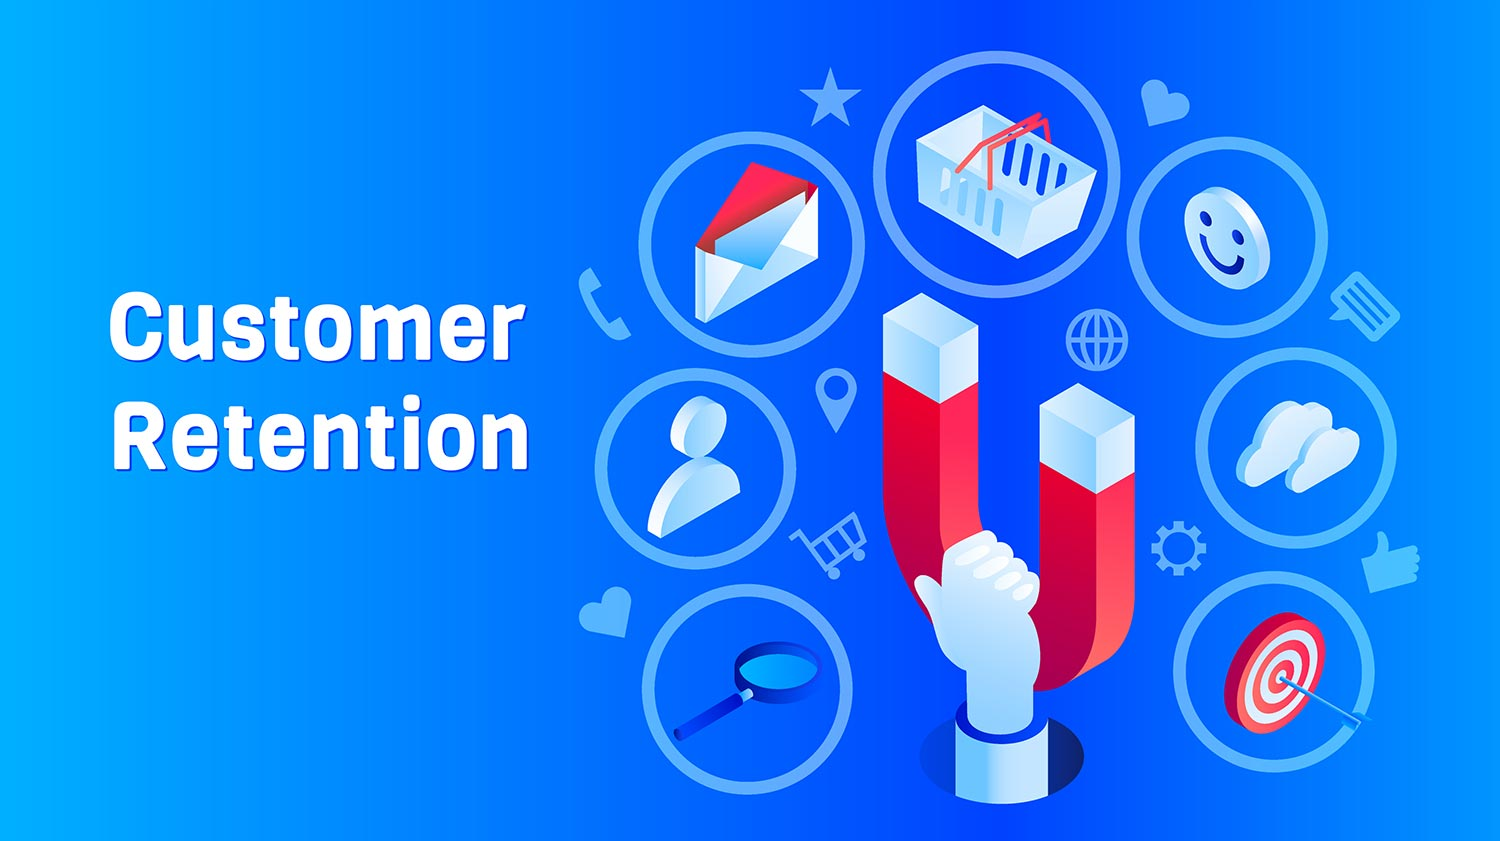 Customer retention strategy for in-app engagement